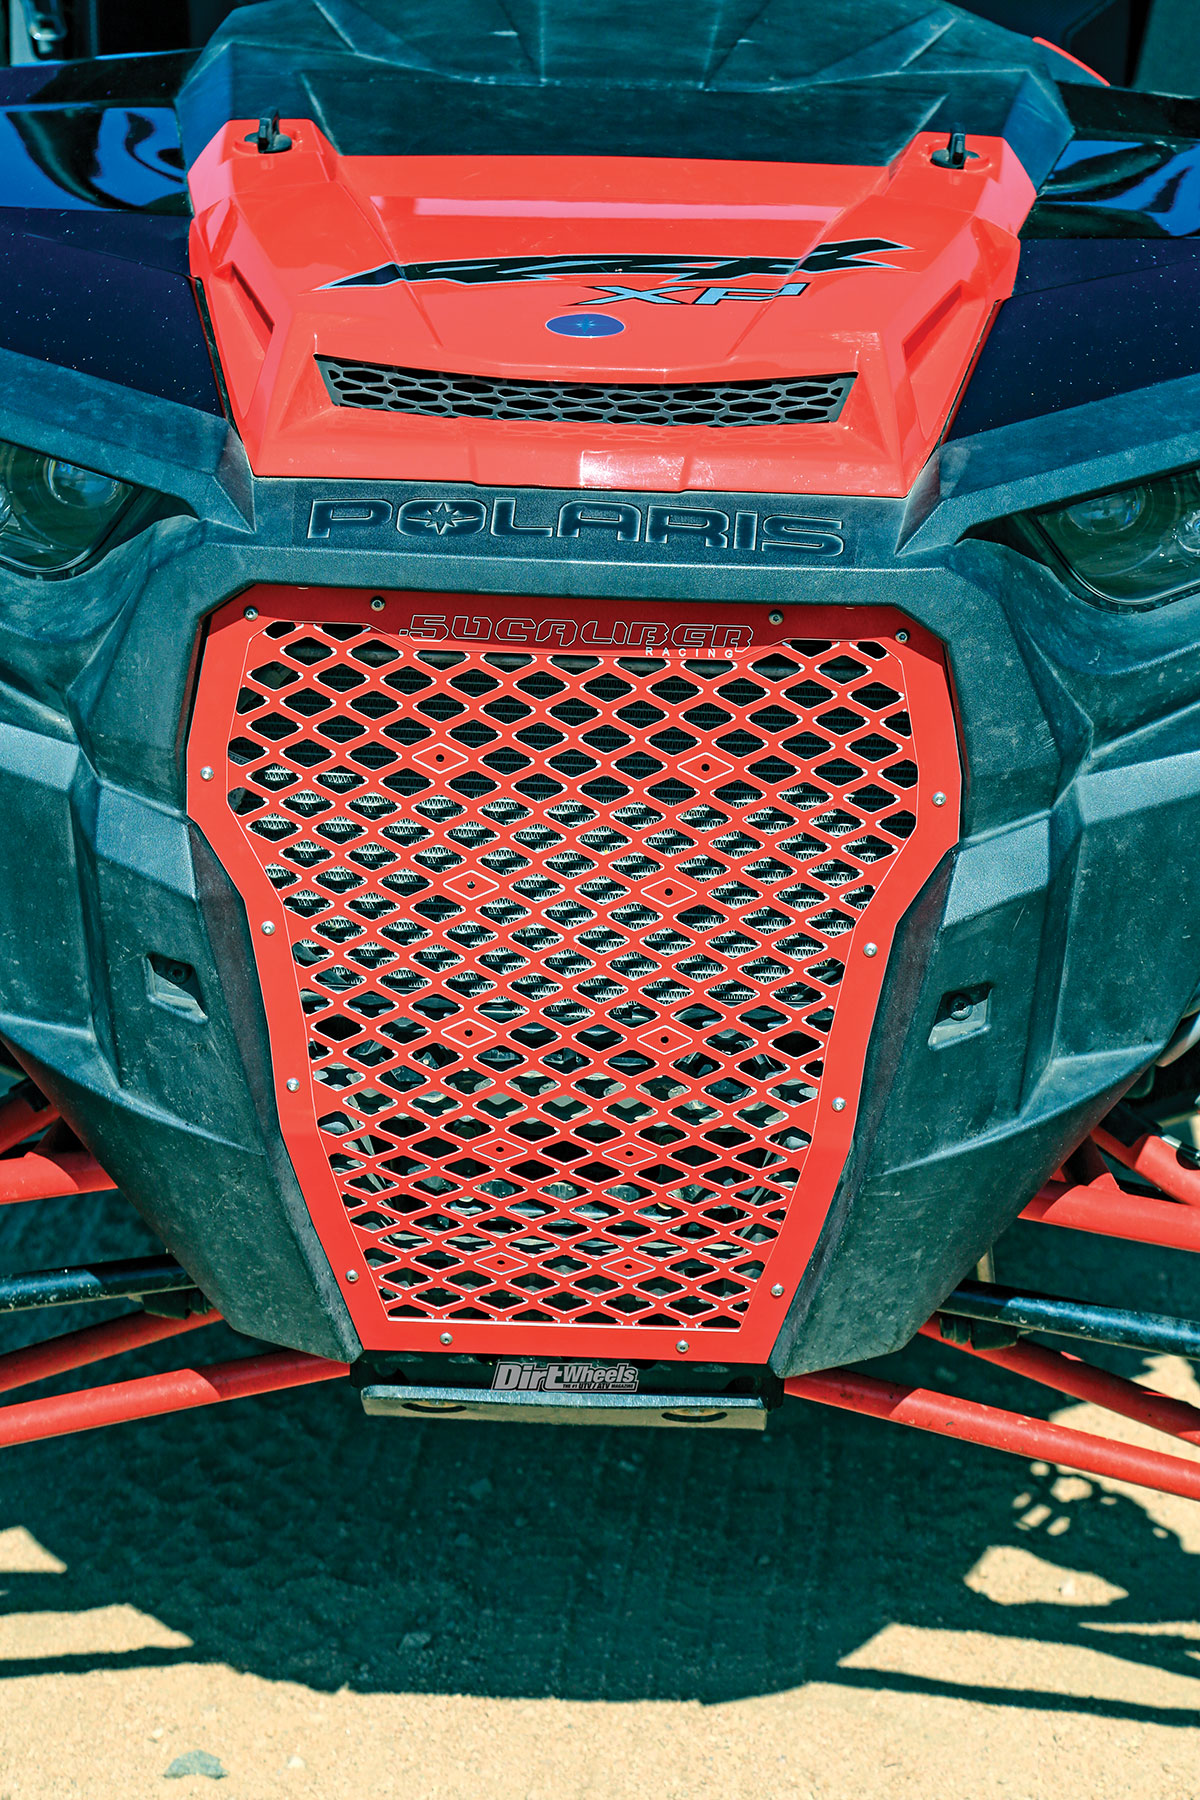 hight resolution of 50 caliber racing s billet grill insert for late model polaris rzr turbos adds a very unique look to the machine it is available in five colors